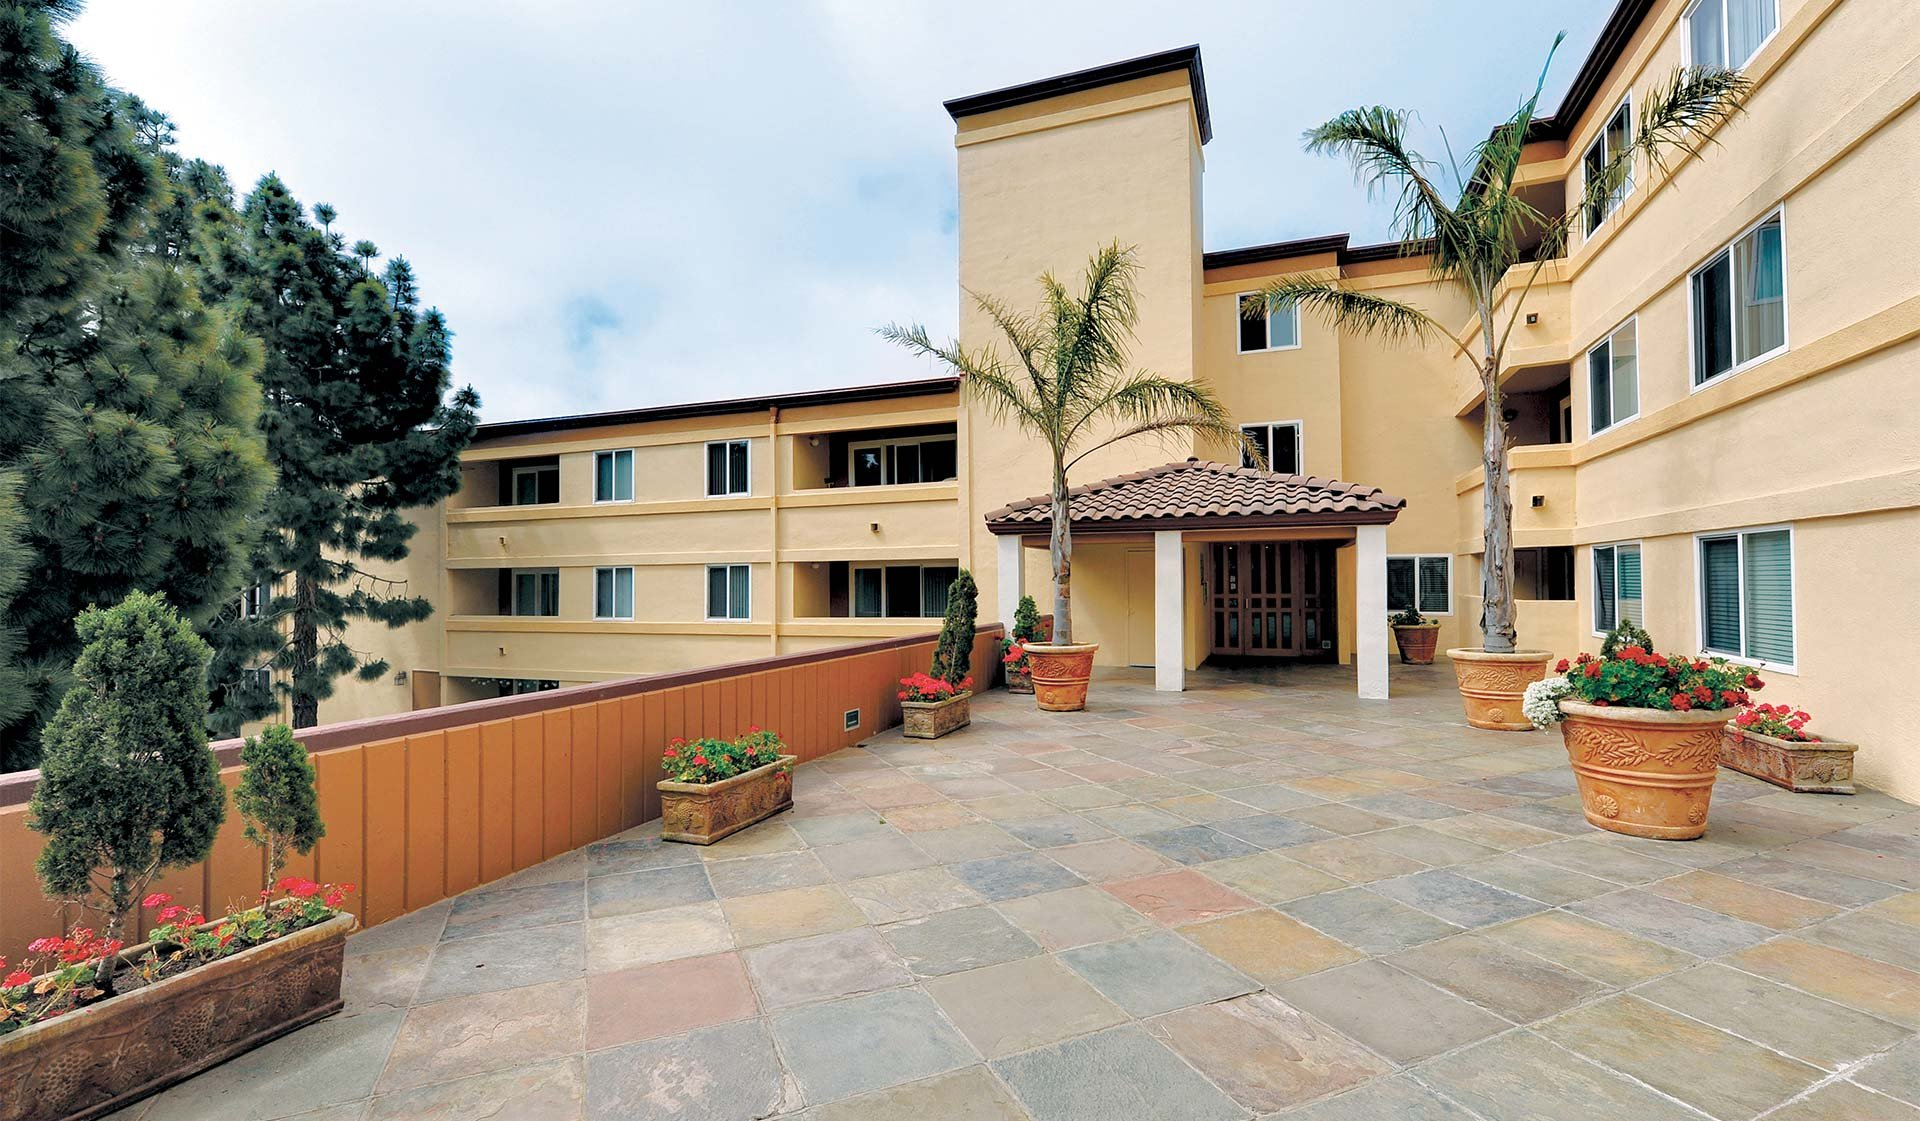 20 Best Apartments In Pacifica CA with pictures